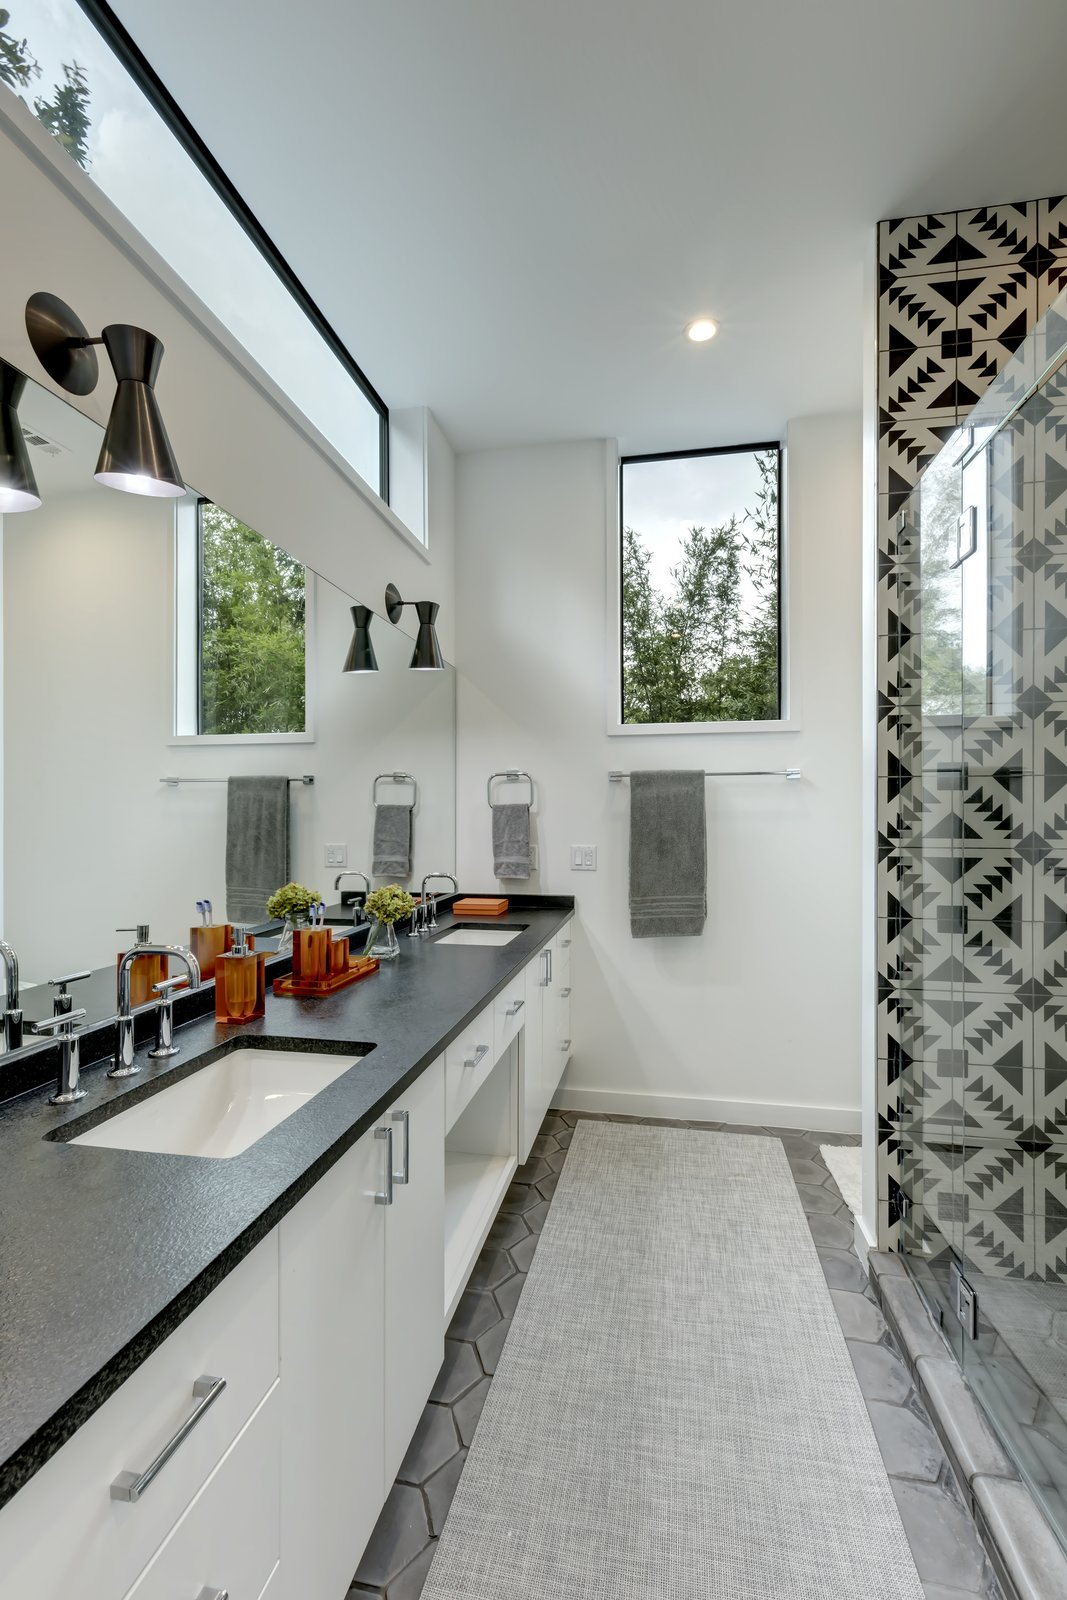 Bath, Ceramic Tile, Engineered Quartz, Enclosed, Recessed, Drop In, and One Piece Add/Subtract House by Matt Fajkus Architecture | Photo by Charles Davis Smith  Bath Engineered Quartz Ceramic Tile Photos from Add/Subtract House